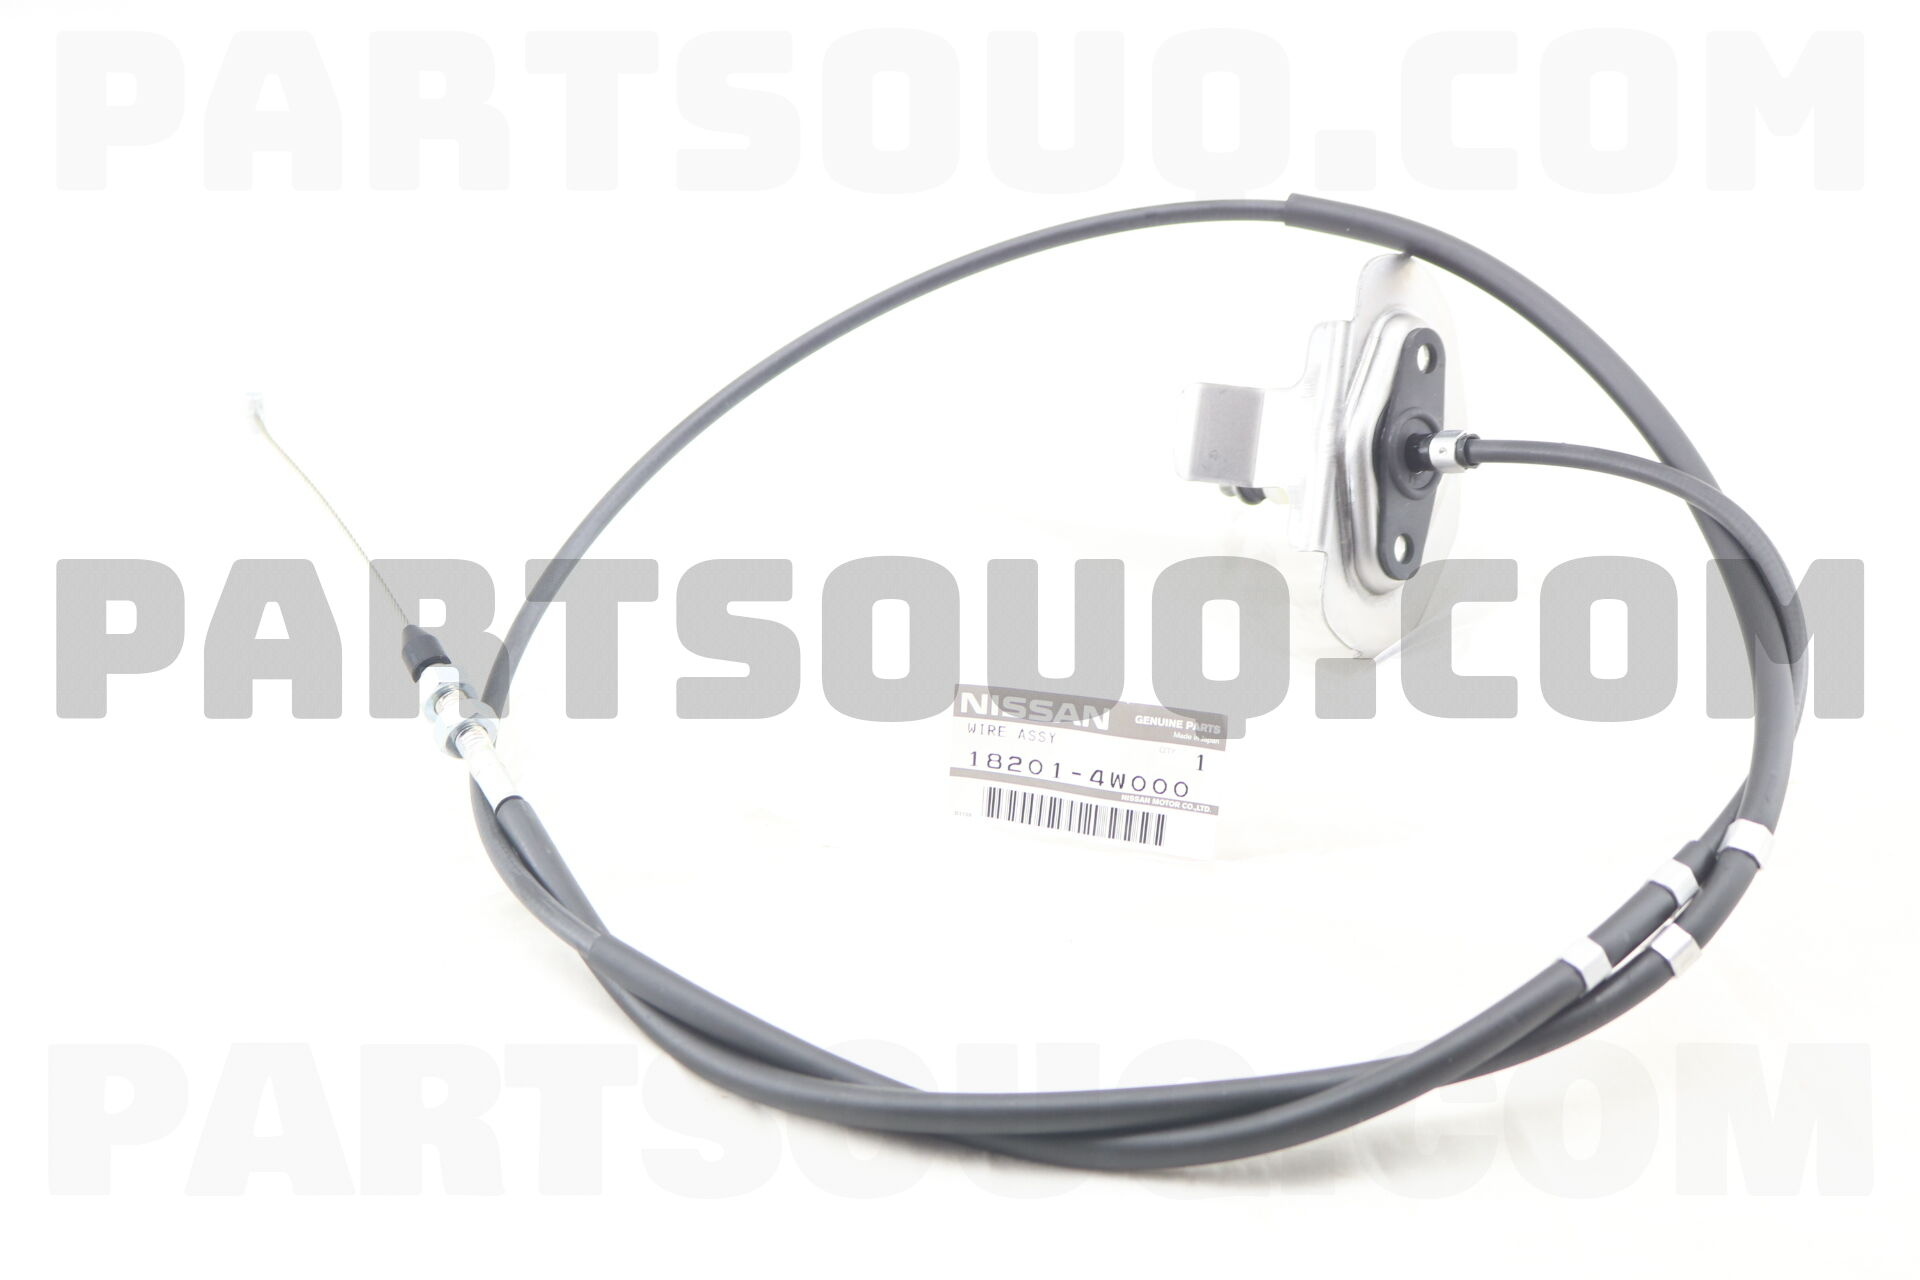 182014W000 Nissan WIRE ASSY-ACCELERATOR Price: 36.49$, Weight: 0.35 ...